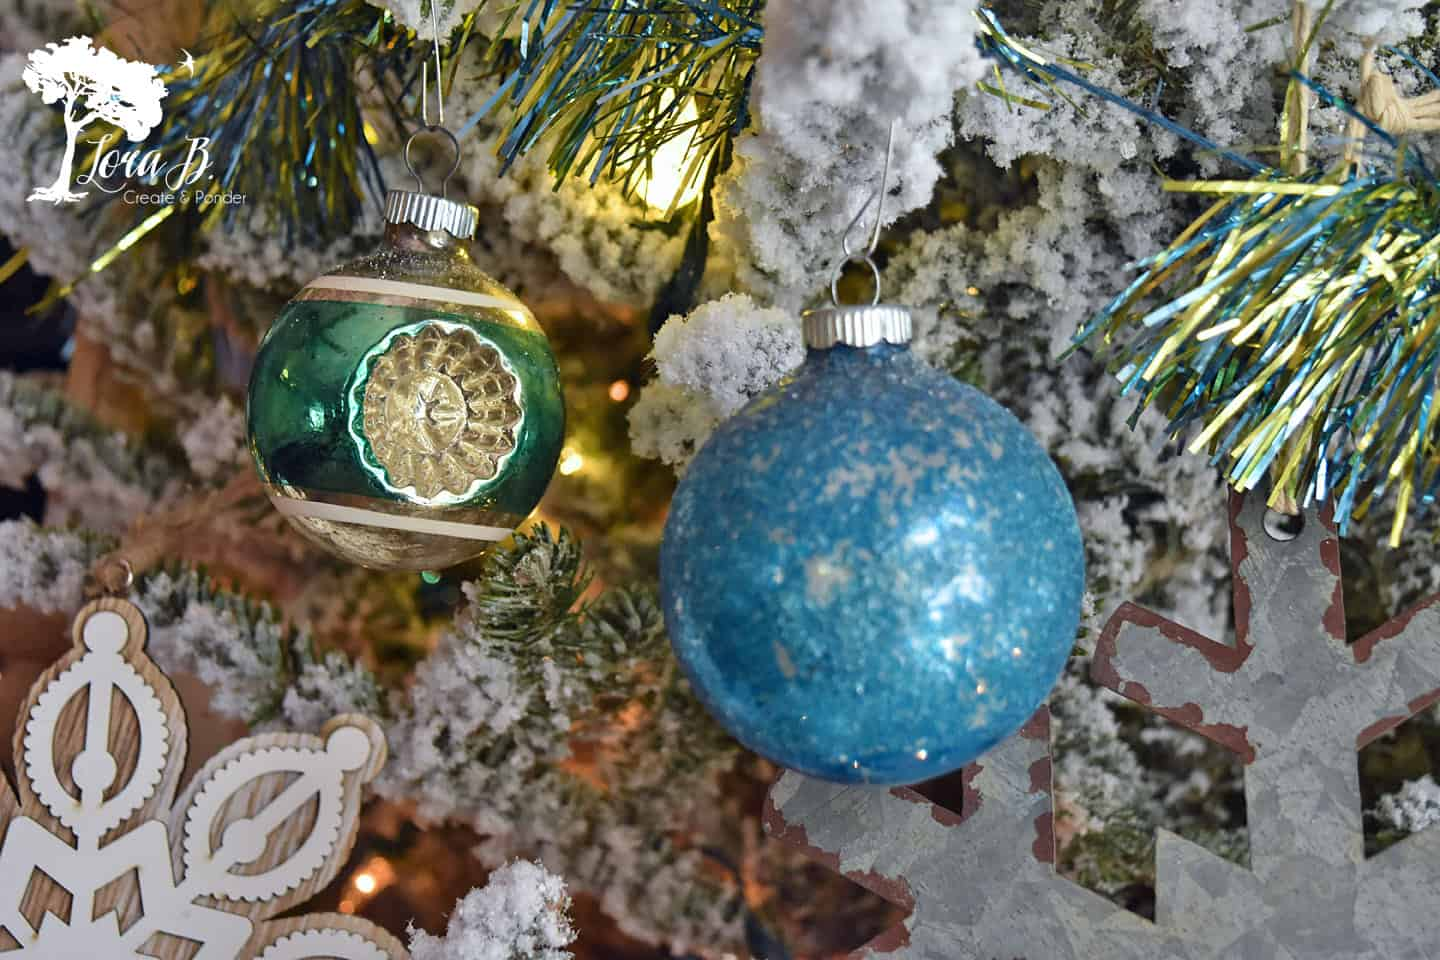 Vintage Shiny Brite ornaments on a Christmas tree.